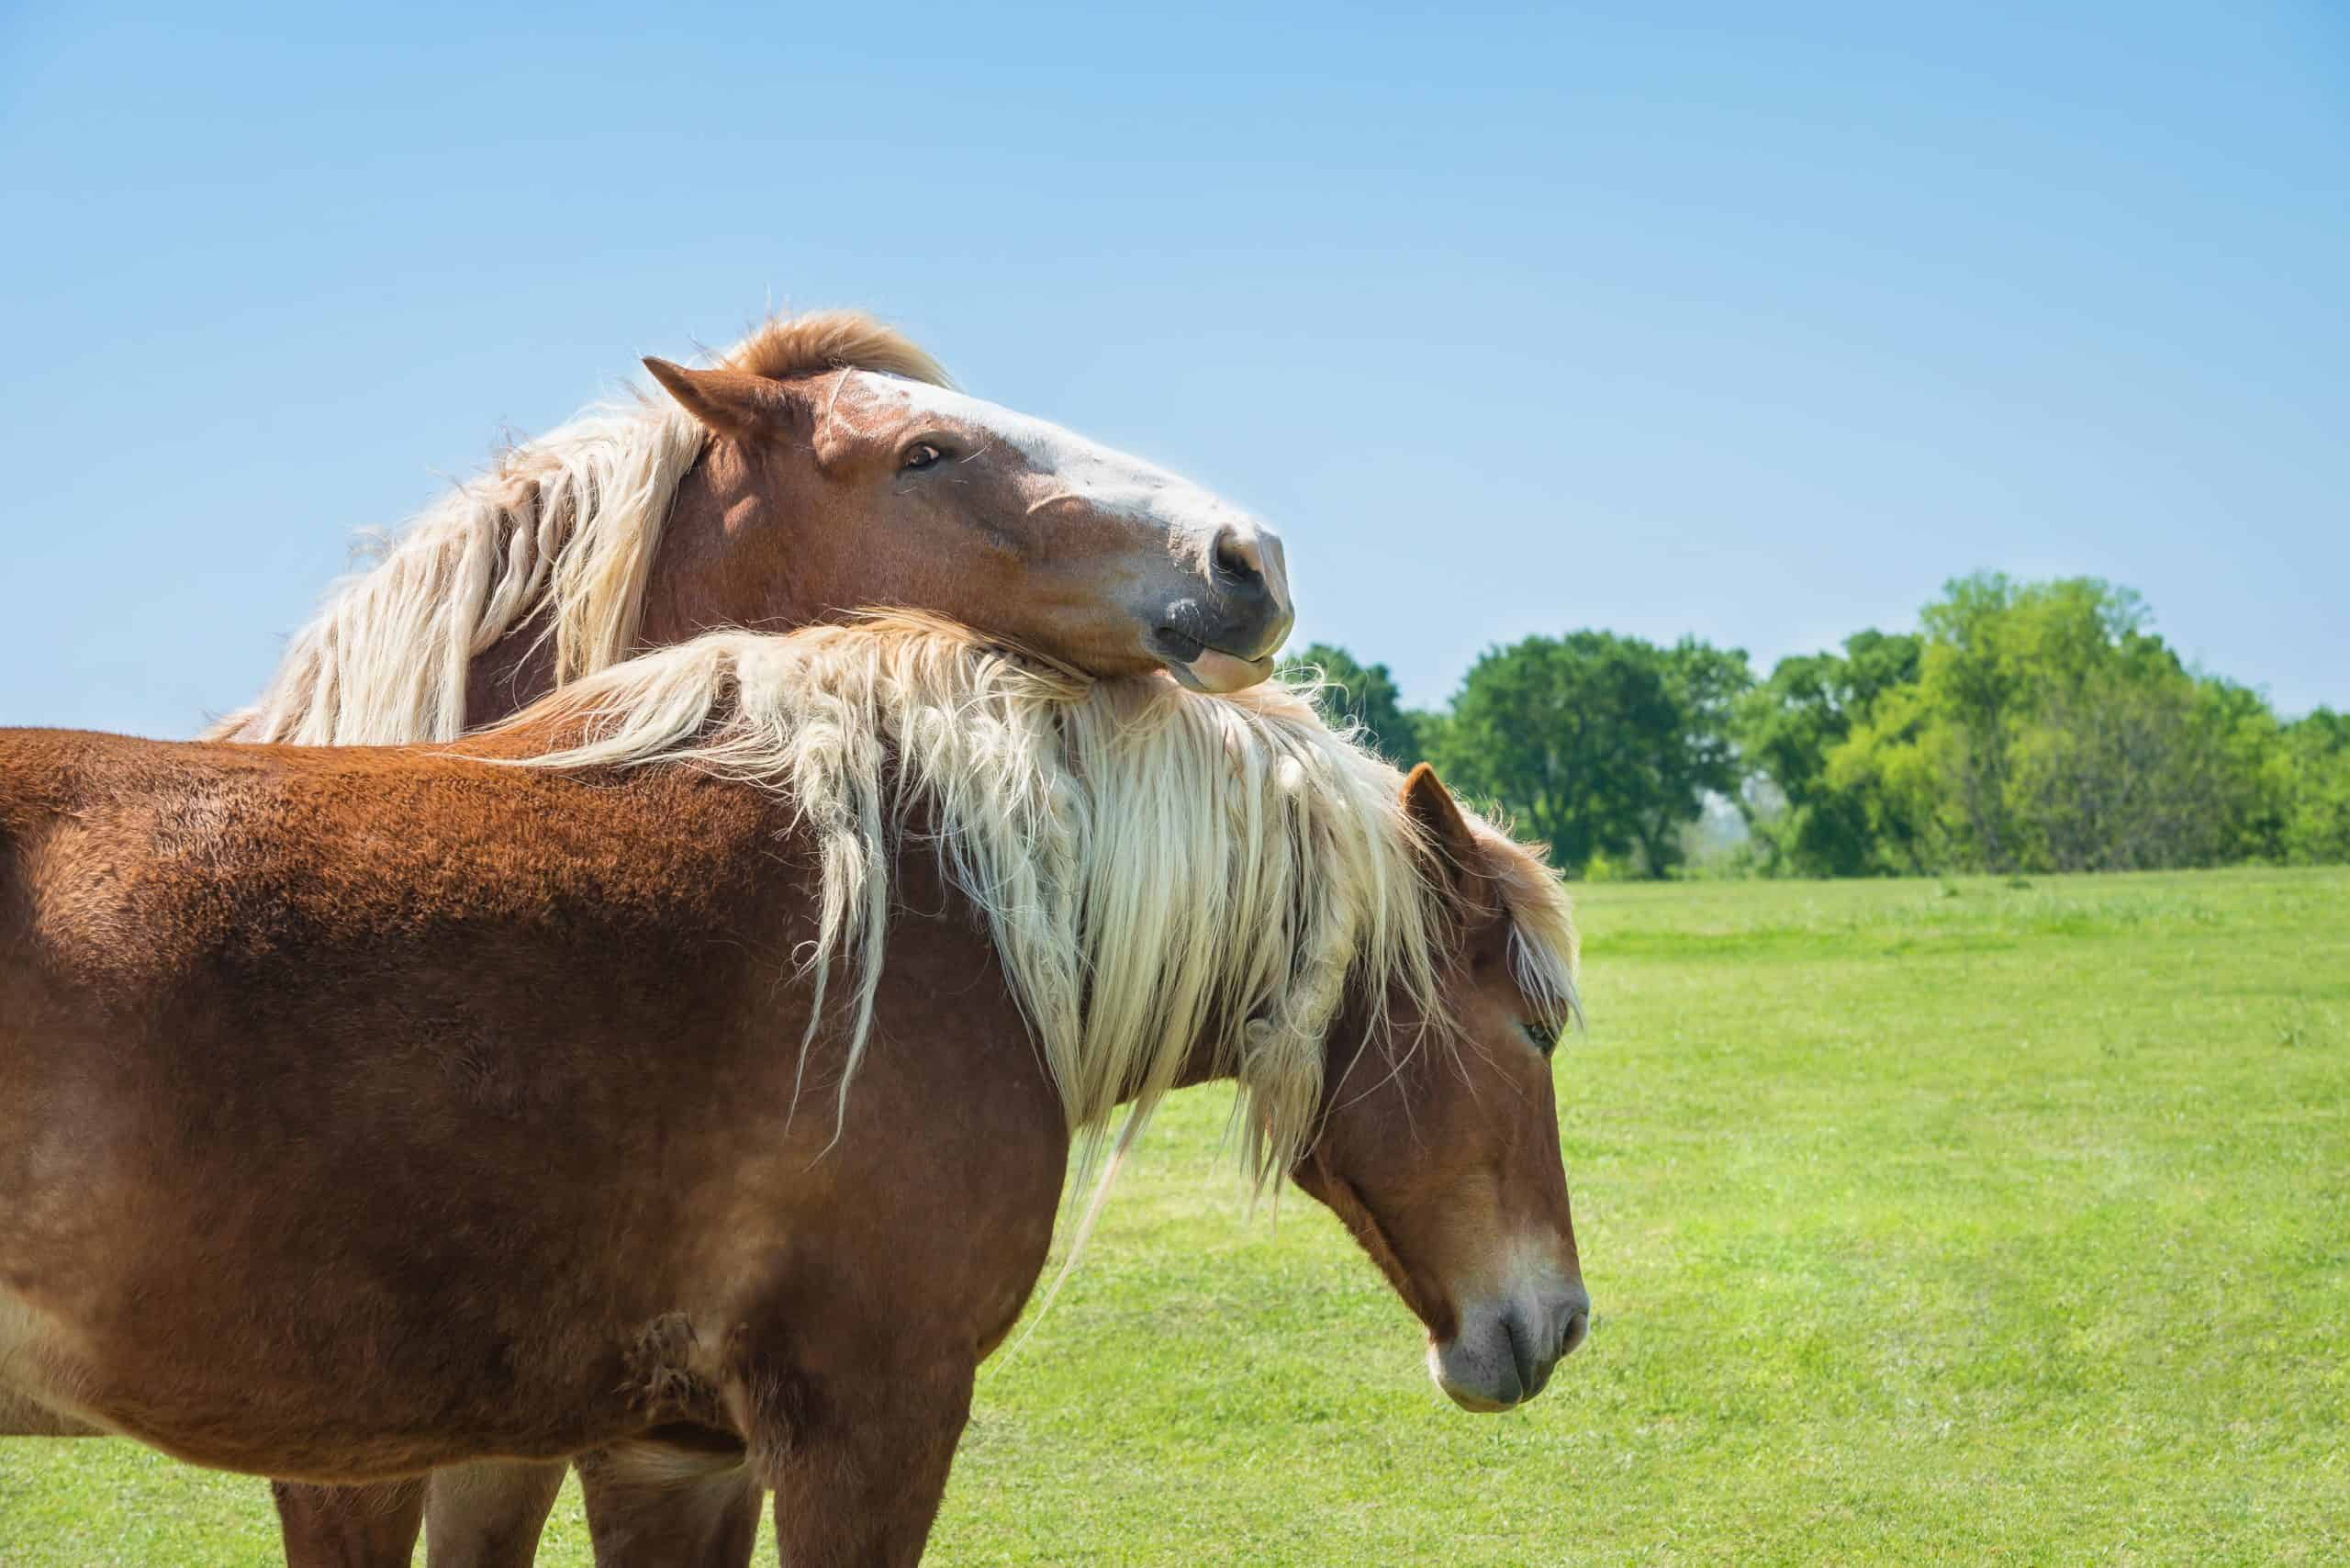 Two Belgian Draft Horses grooming each other in Texas spring. Green pasture and blue sky background with copy space.